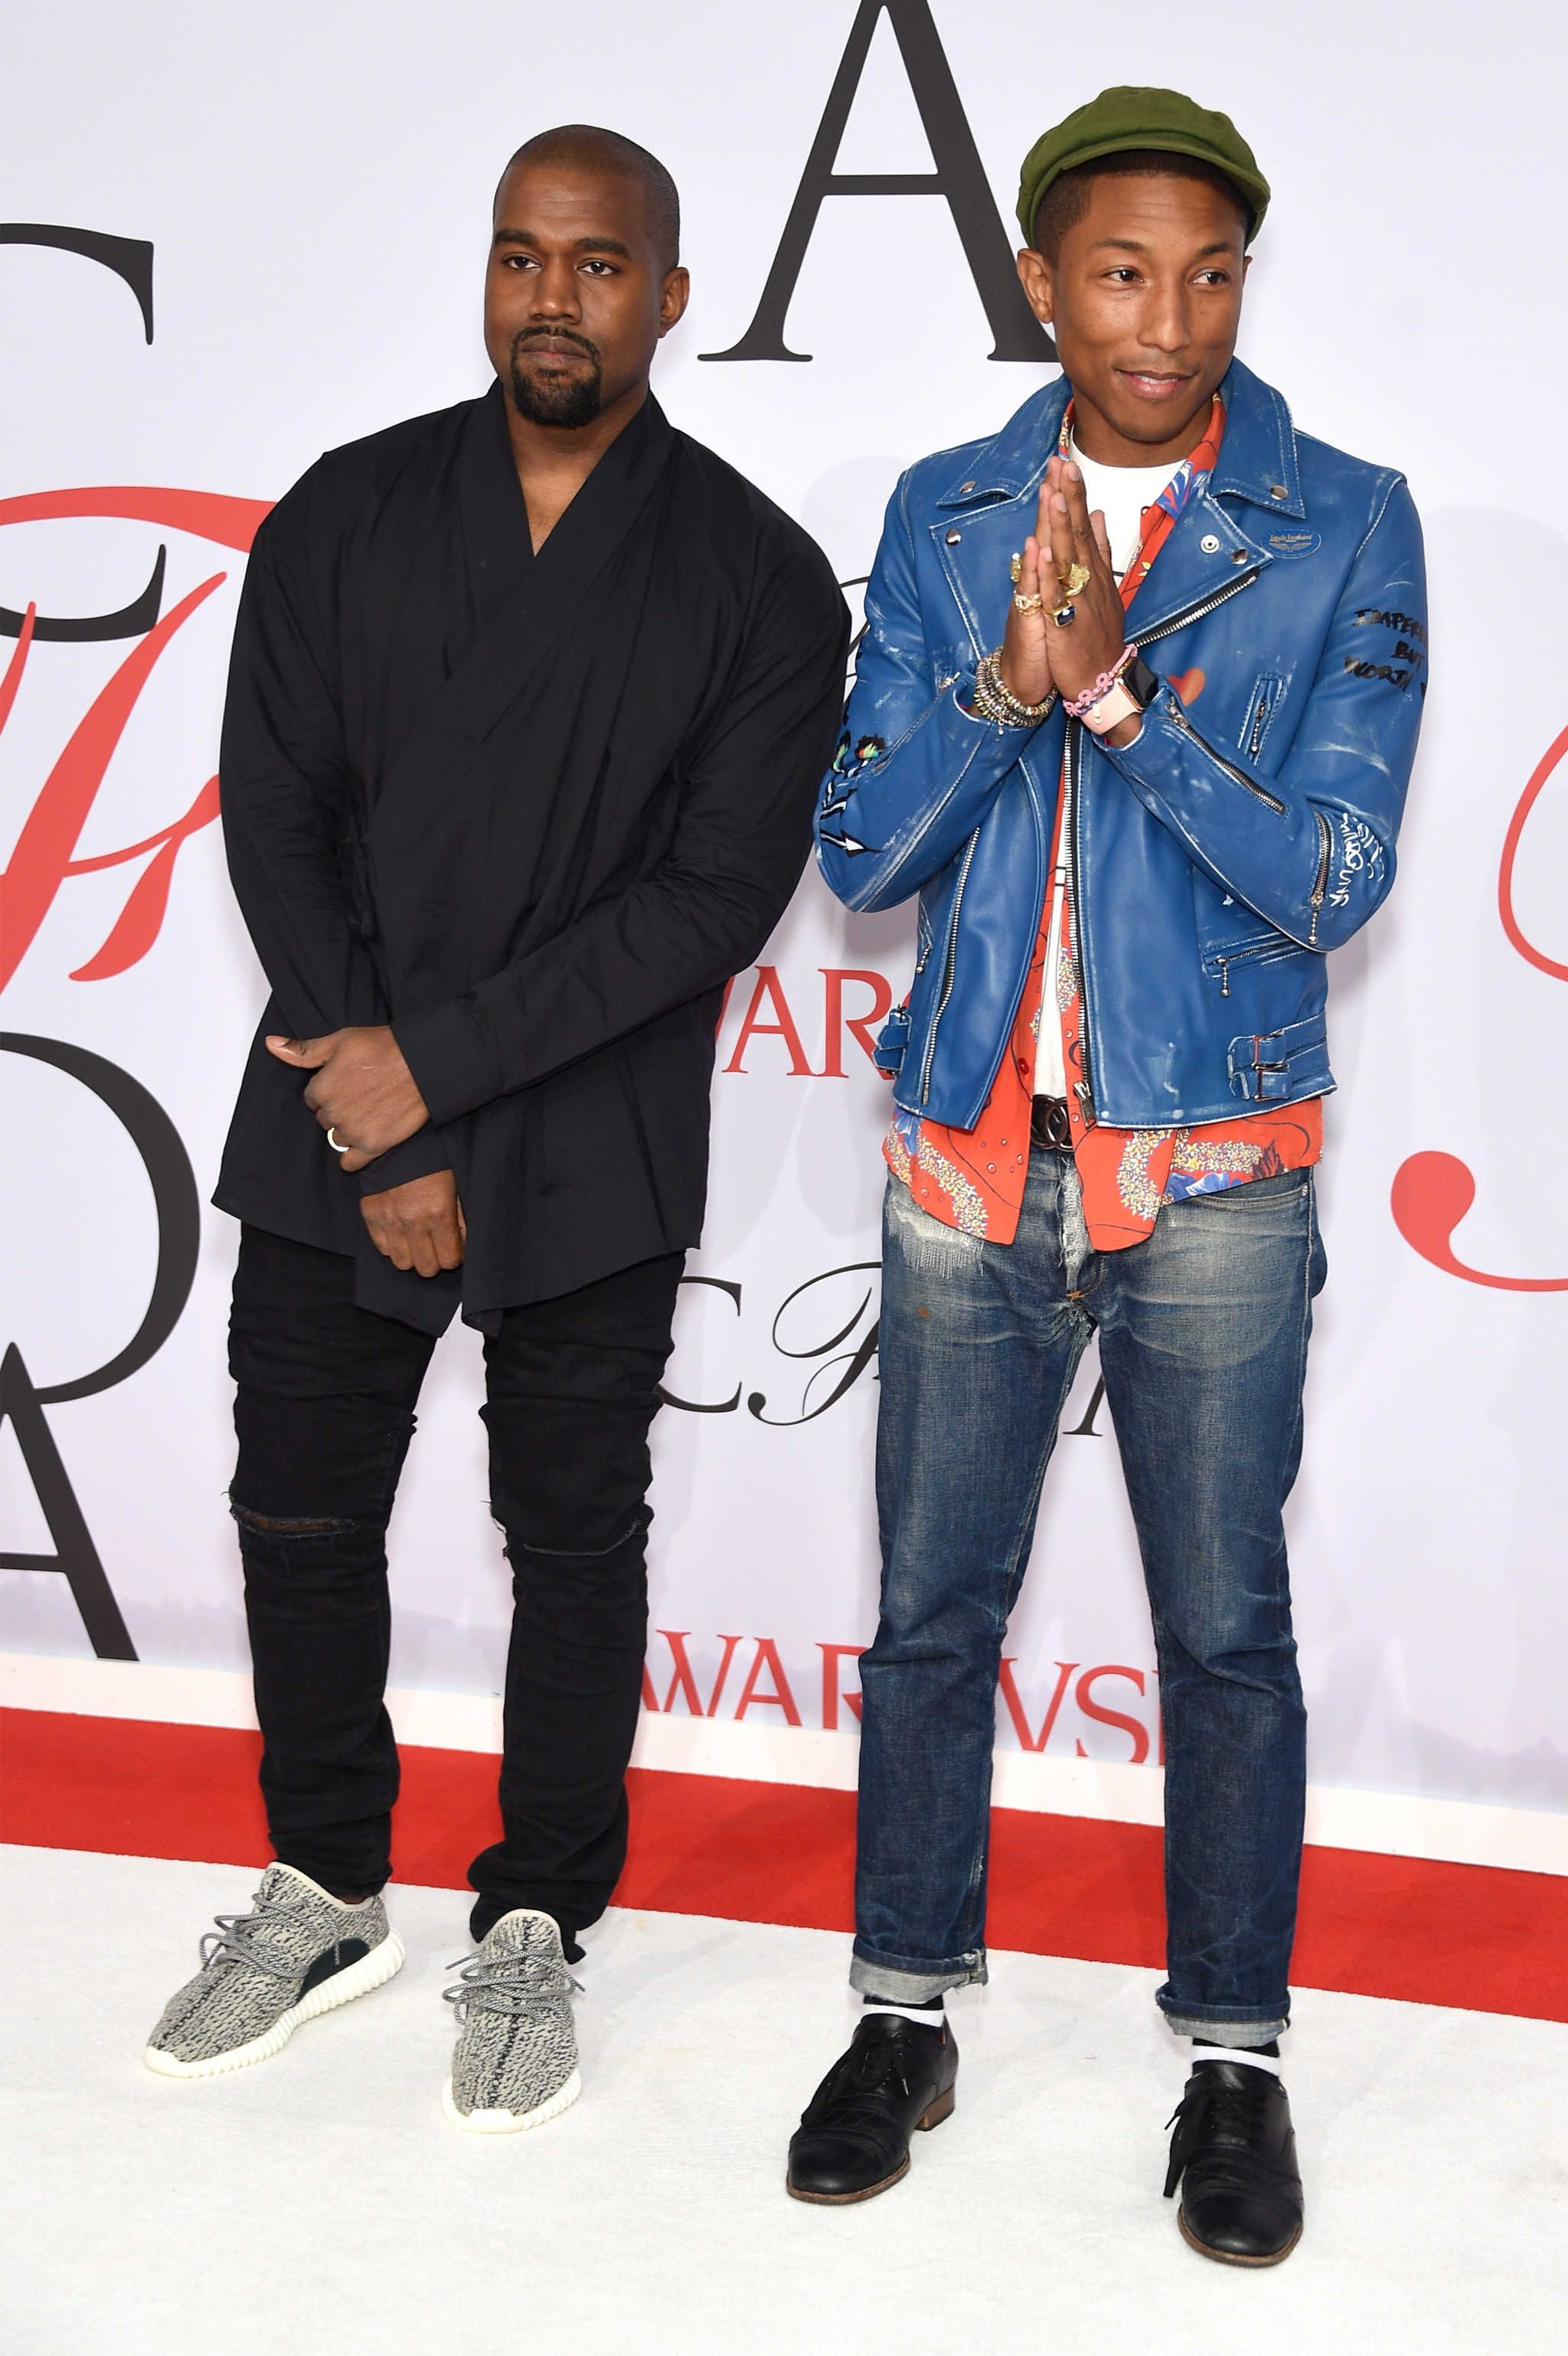 f1a8c7225429 Kanye West and Pharrell Williams at the 2015 CFDA Awards. Photo: Dimitrios  Kambouris/Getty Images.